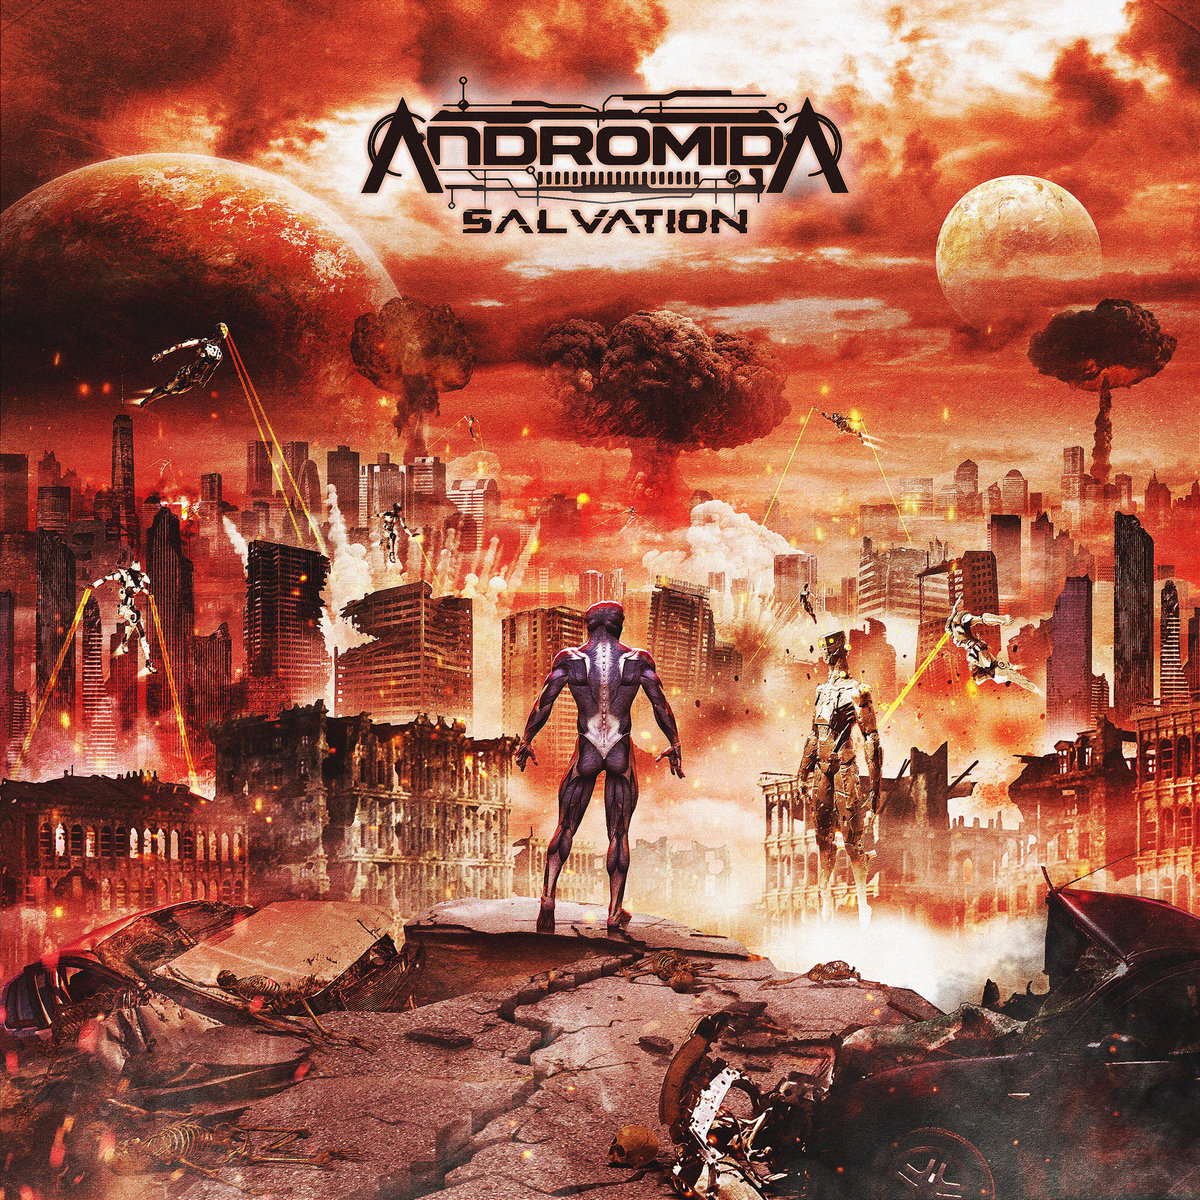 Salvation by Andromida